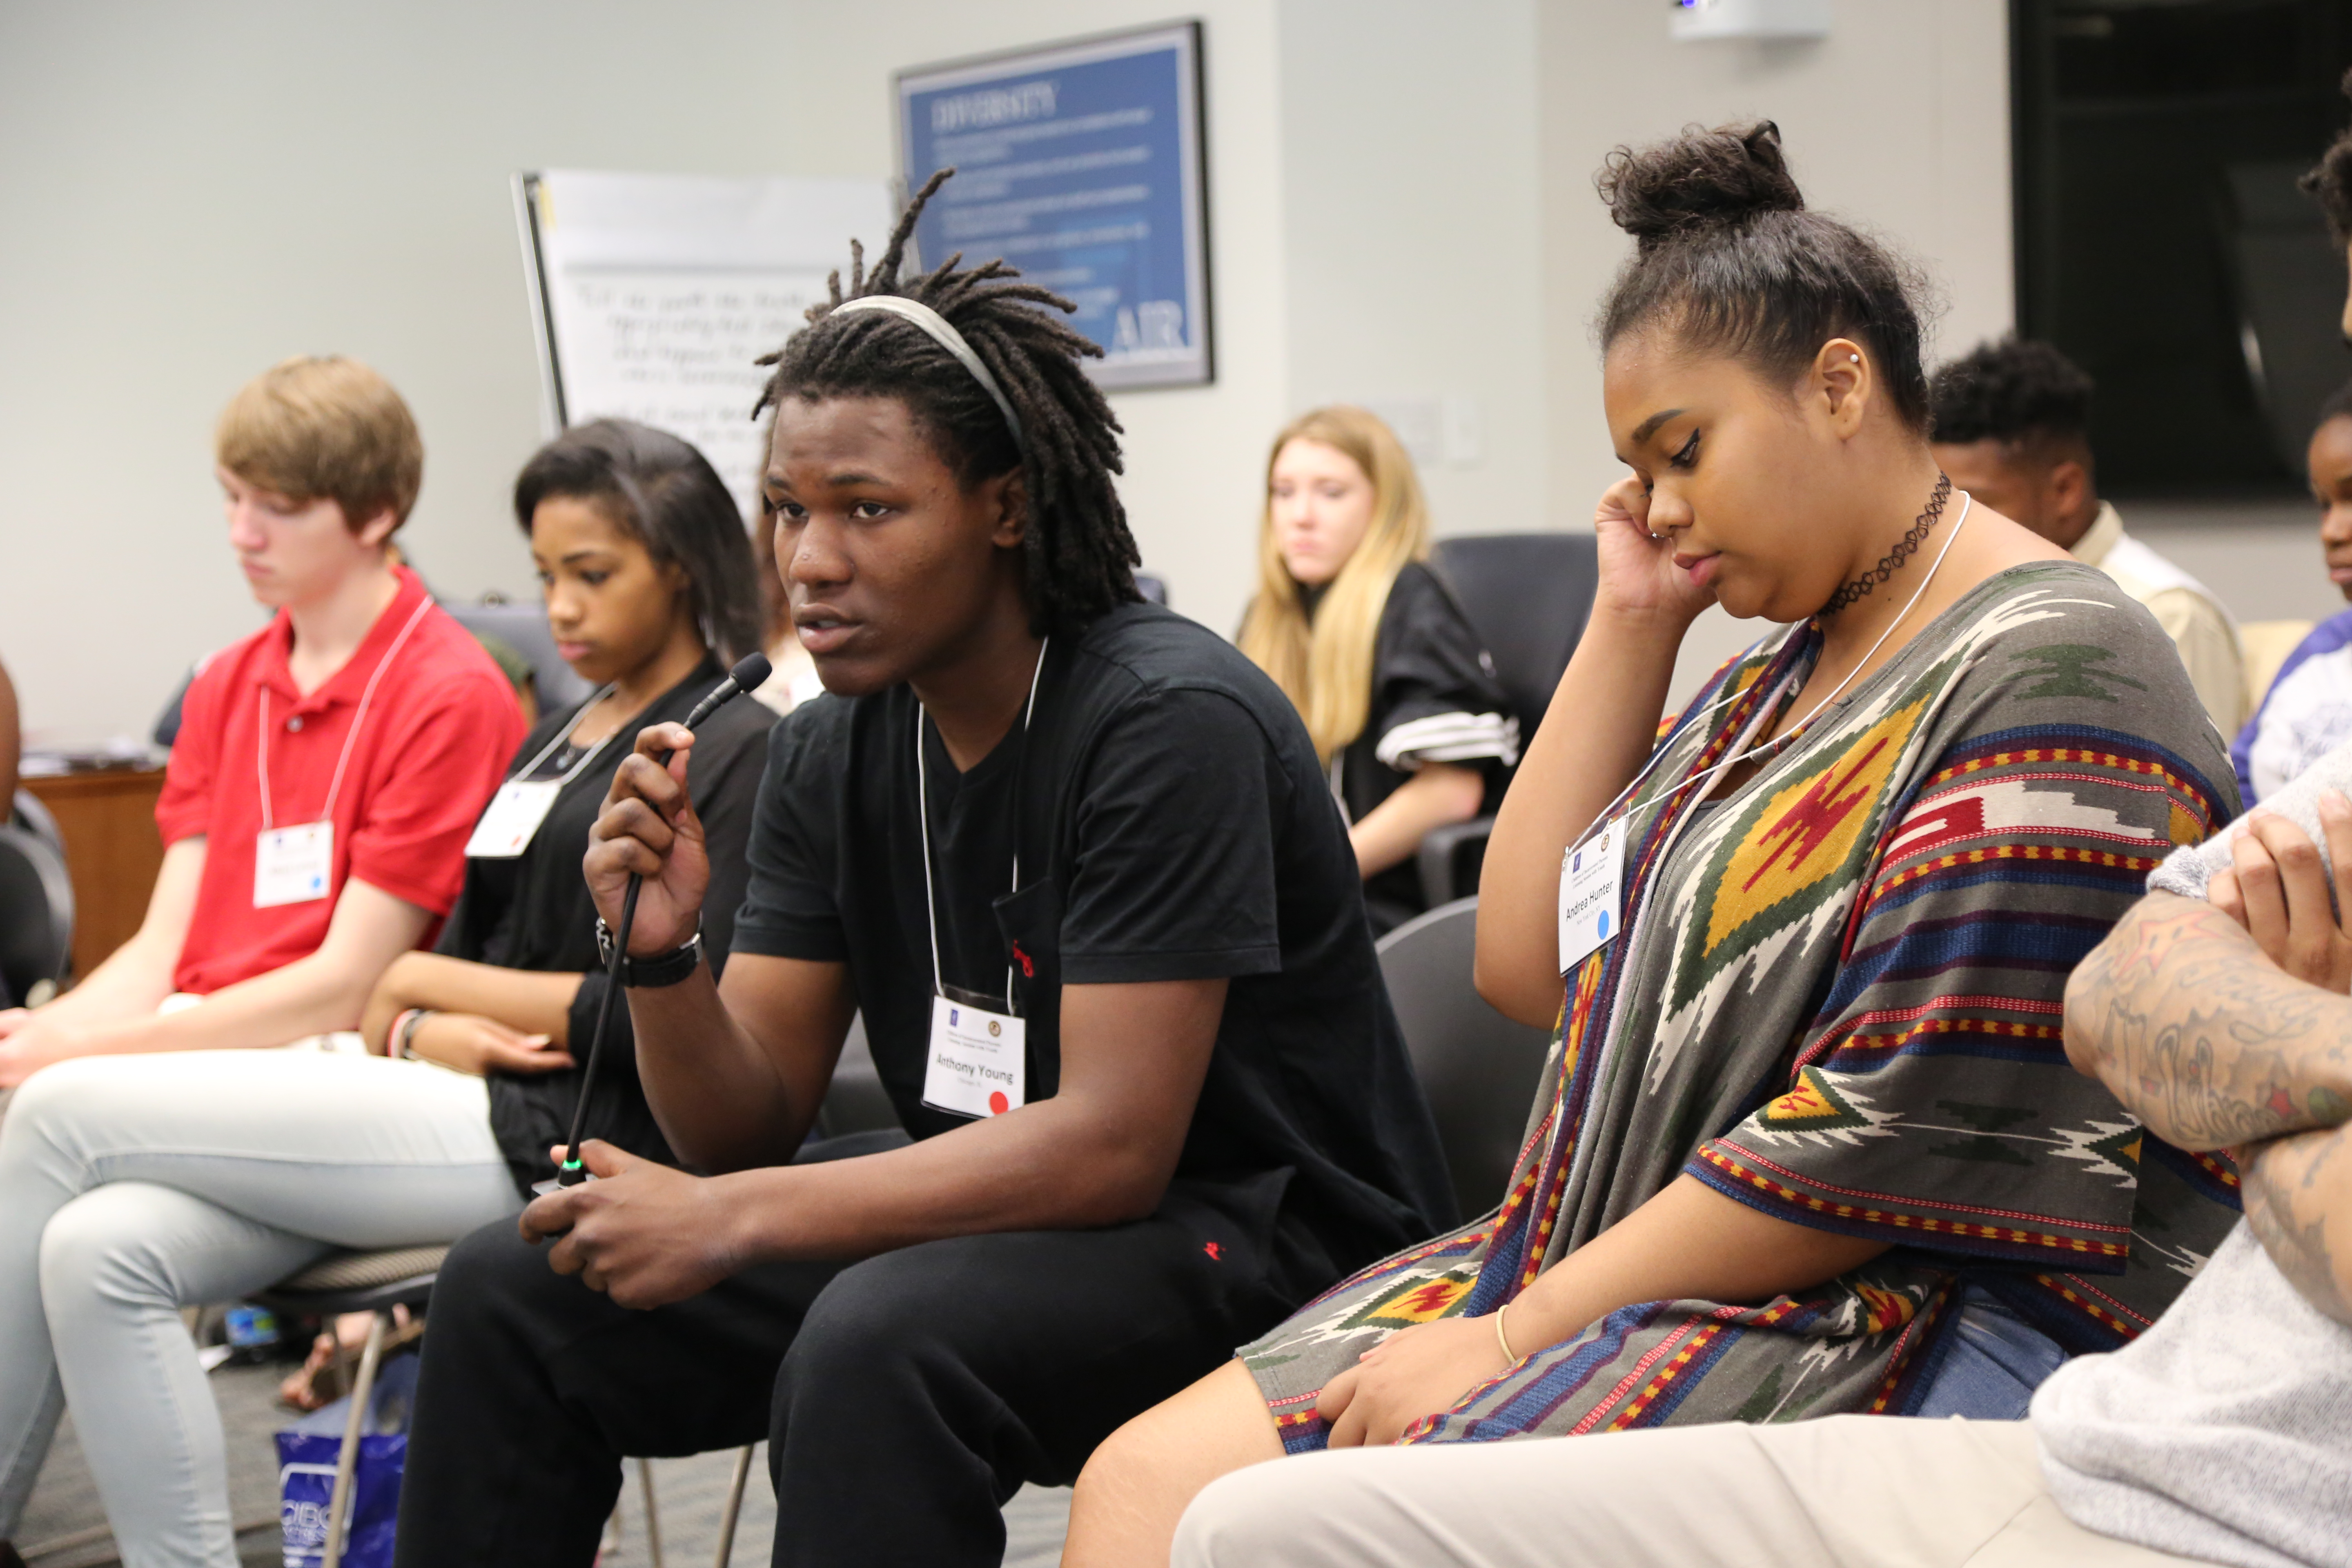 Click here to learn more about the listening session with youth who have an incarcerated parent